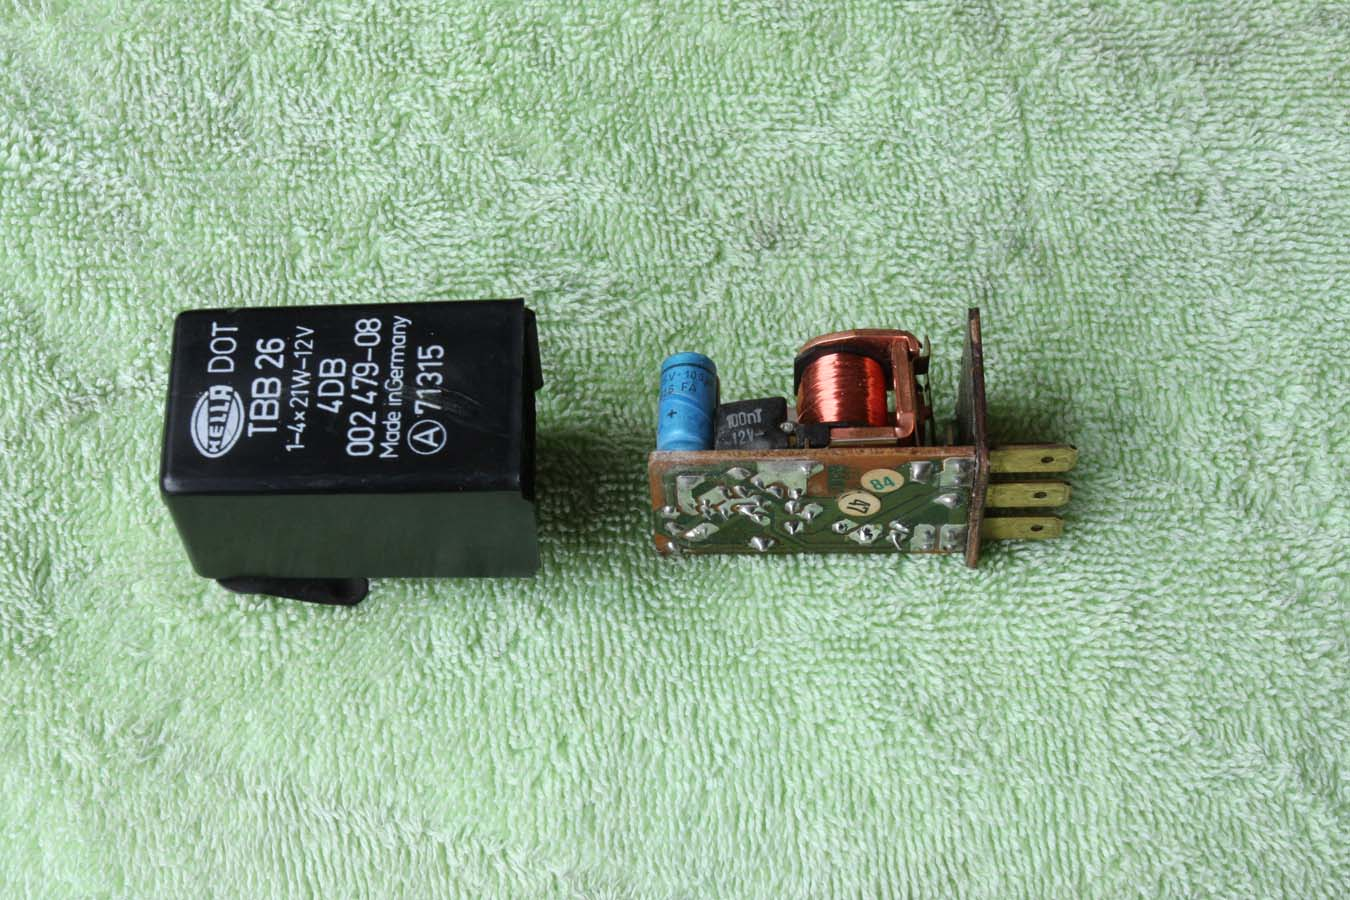 turn signal flasher evaluation and repair